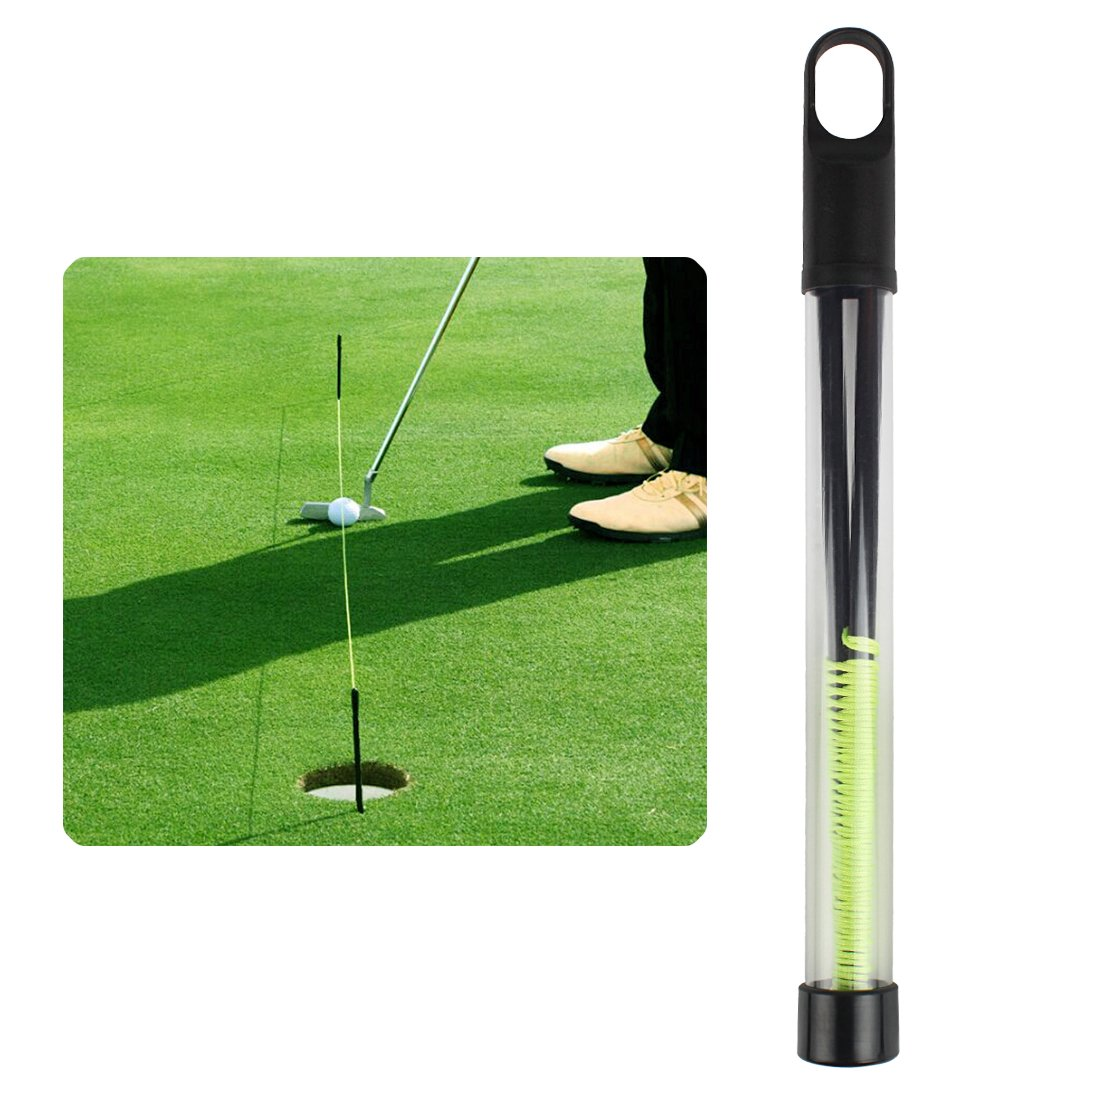 Andux Golf Training Aid Golf Putting String Pegs Golf Putting Guide Line LXXLQ-01 by Andux